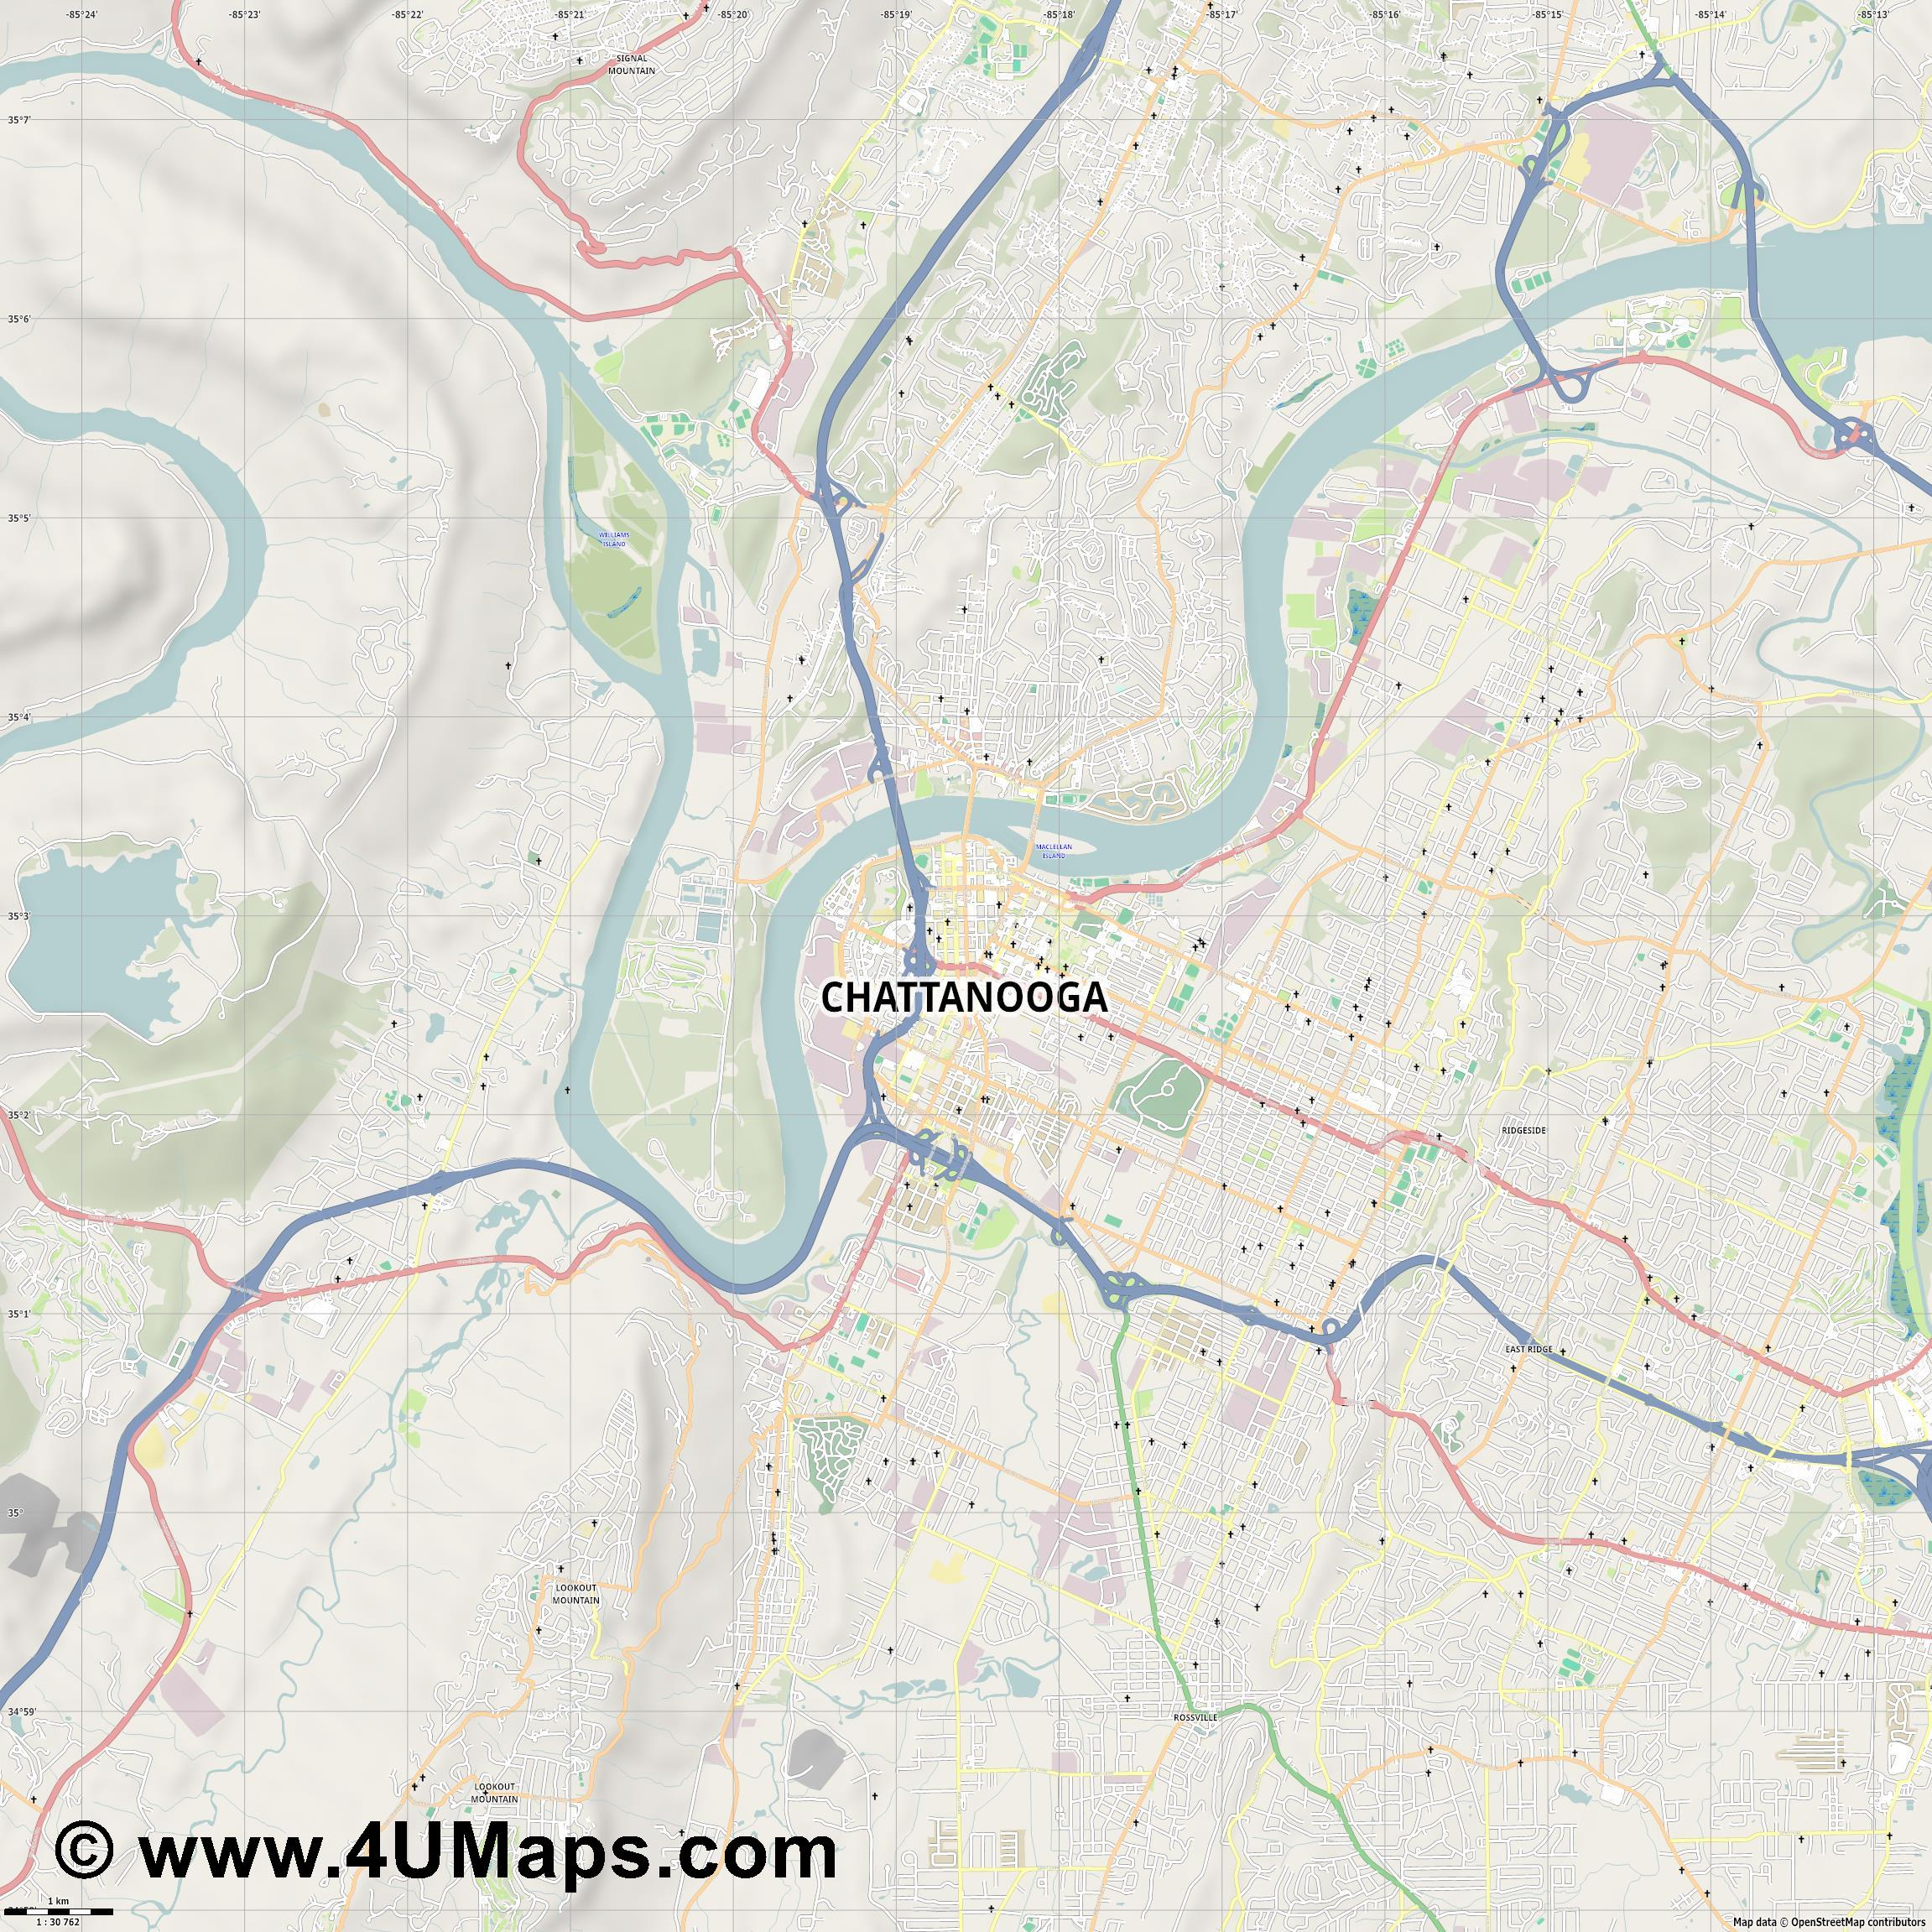 Chattanooga  jpg high detail, large area preview vector city map